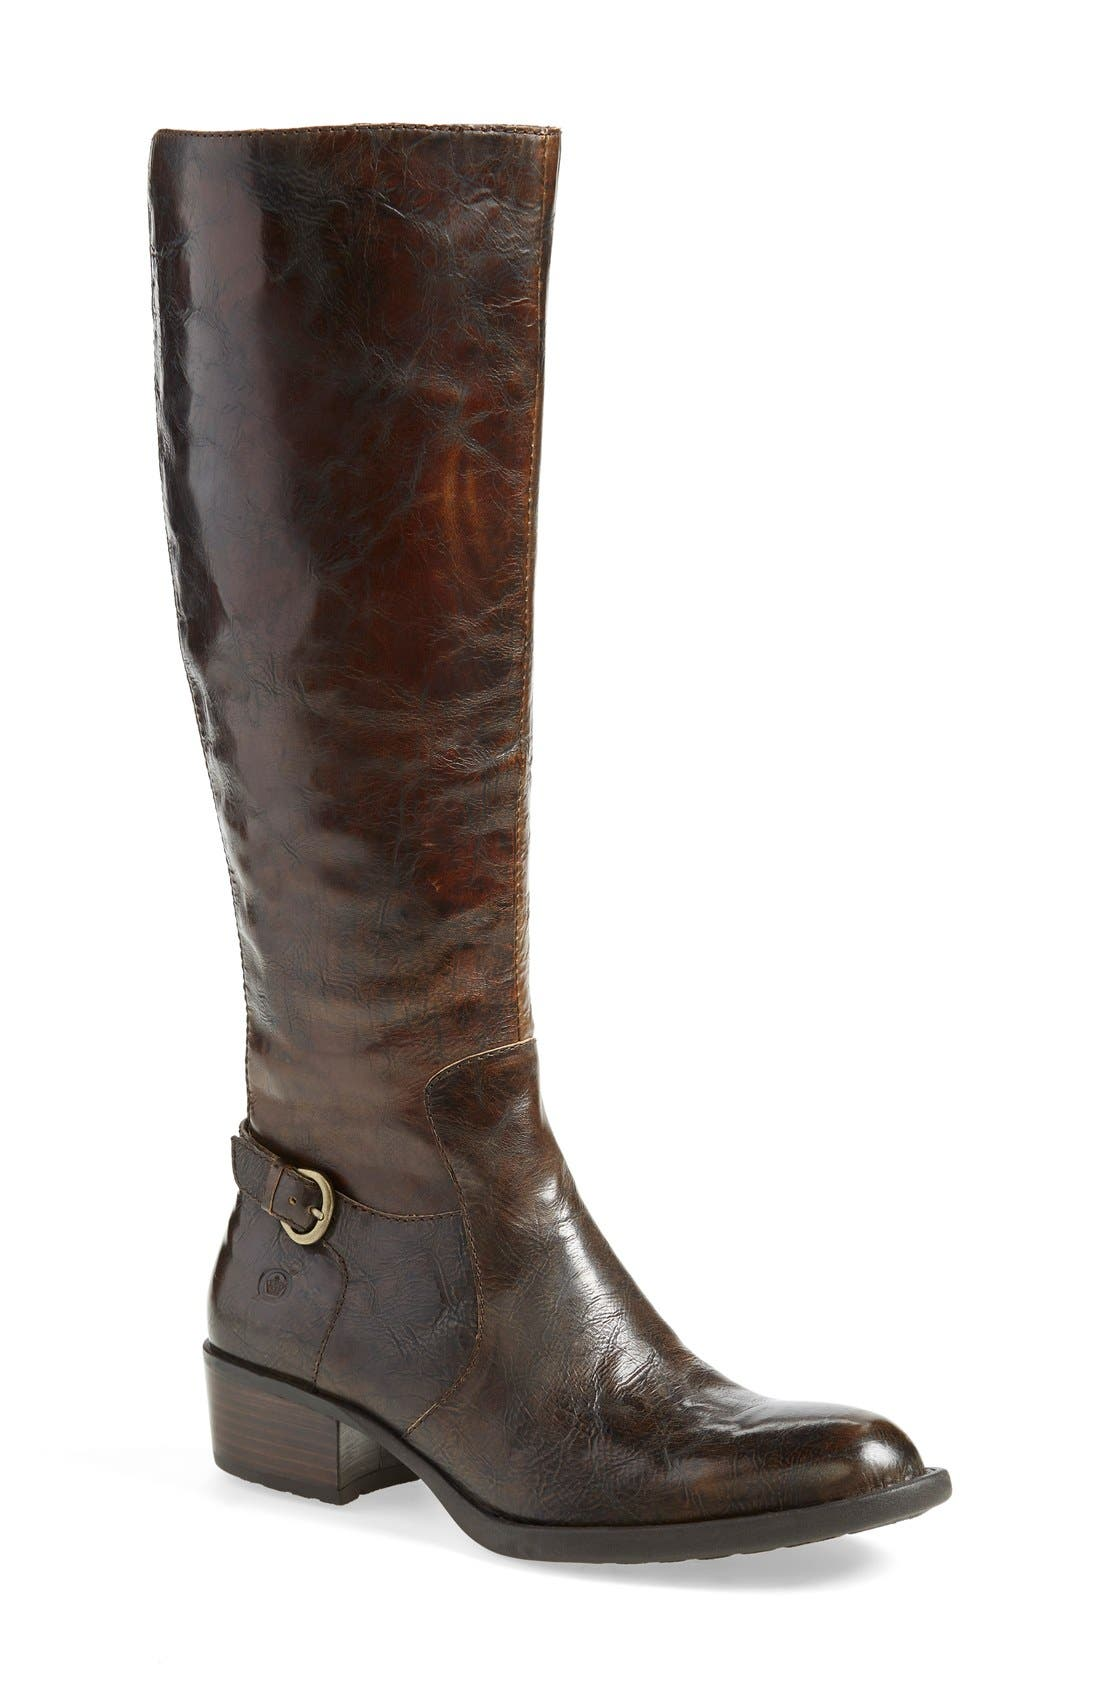 Alternate Image 1 Selected - Børn 'Helen' Boot (Women) (Wide Calf)